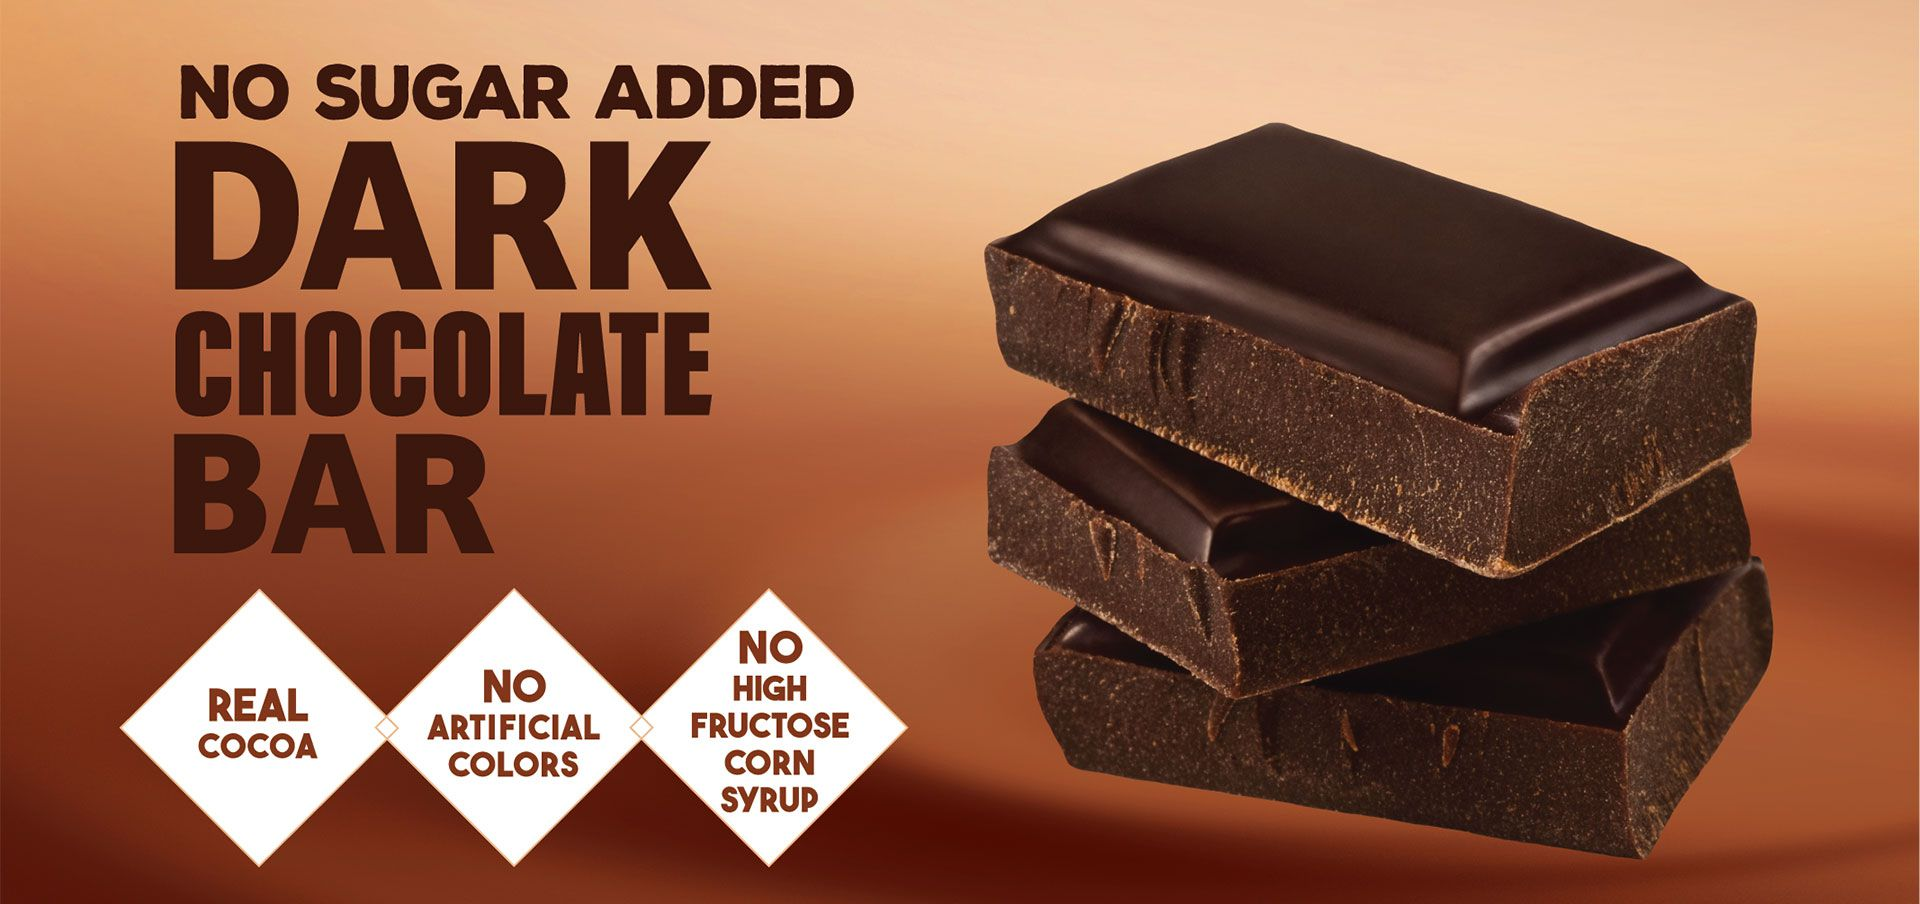 dark chocolate bar label image